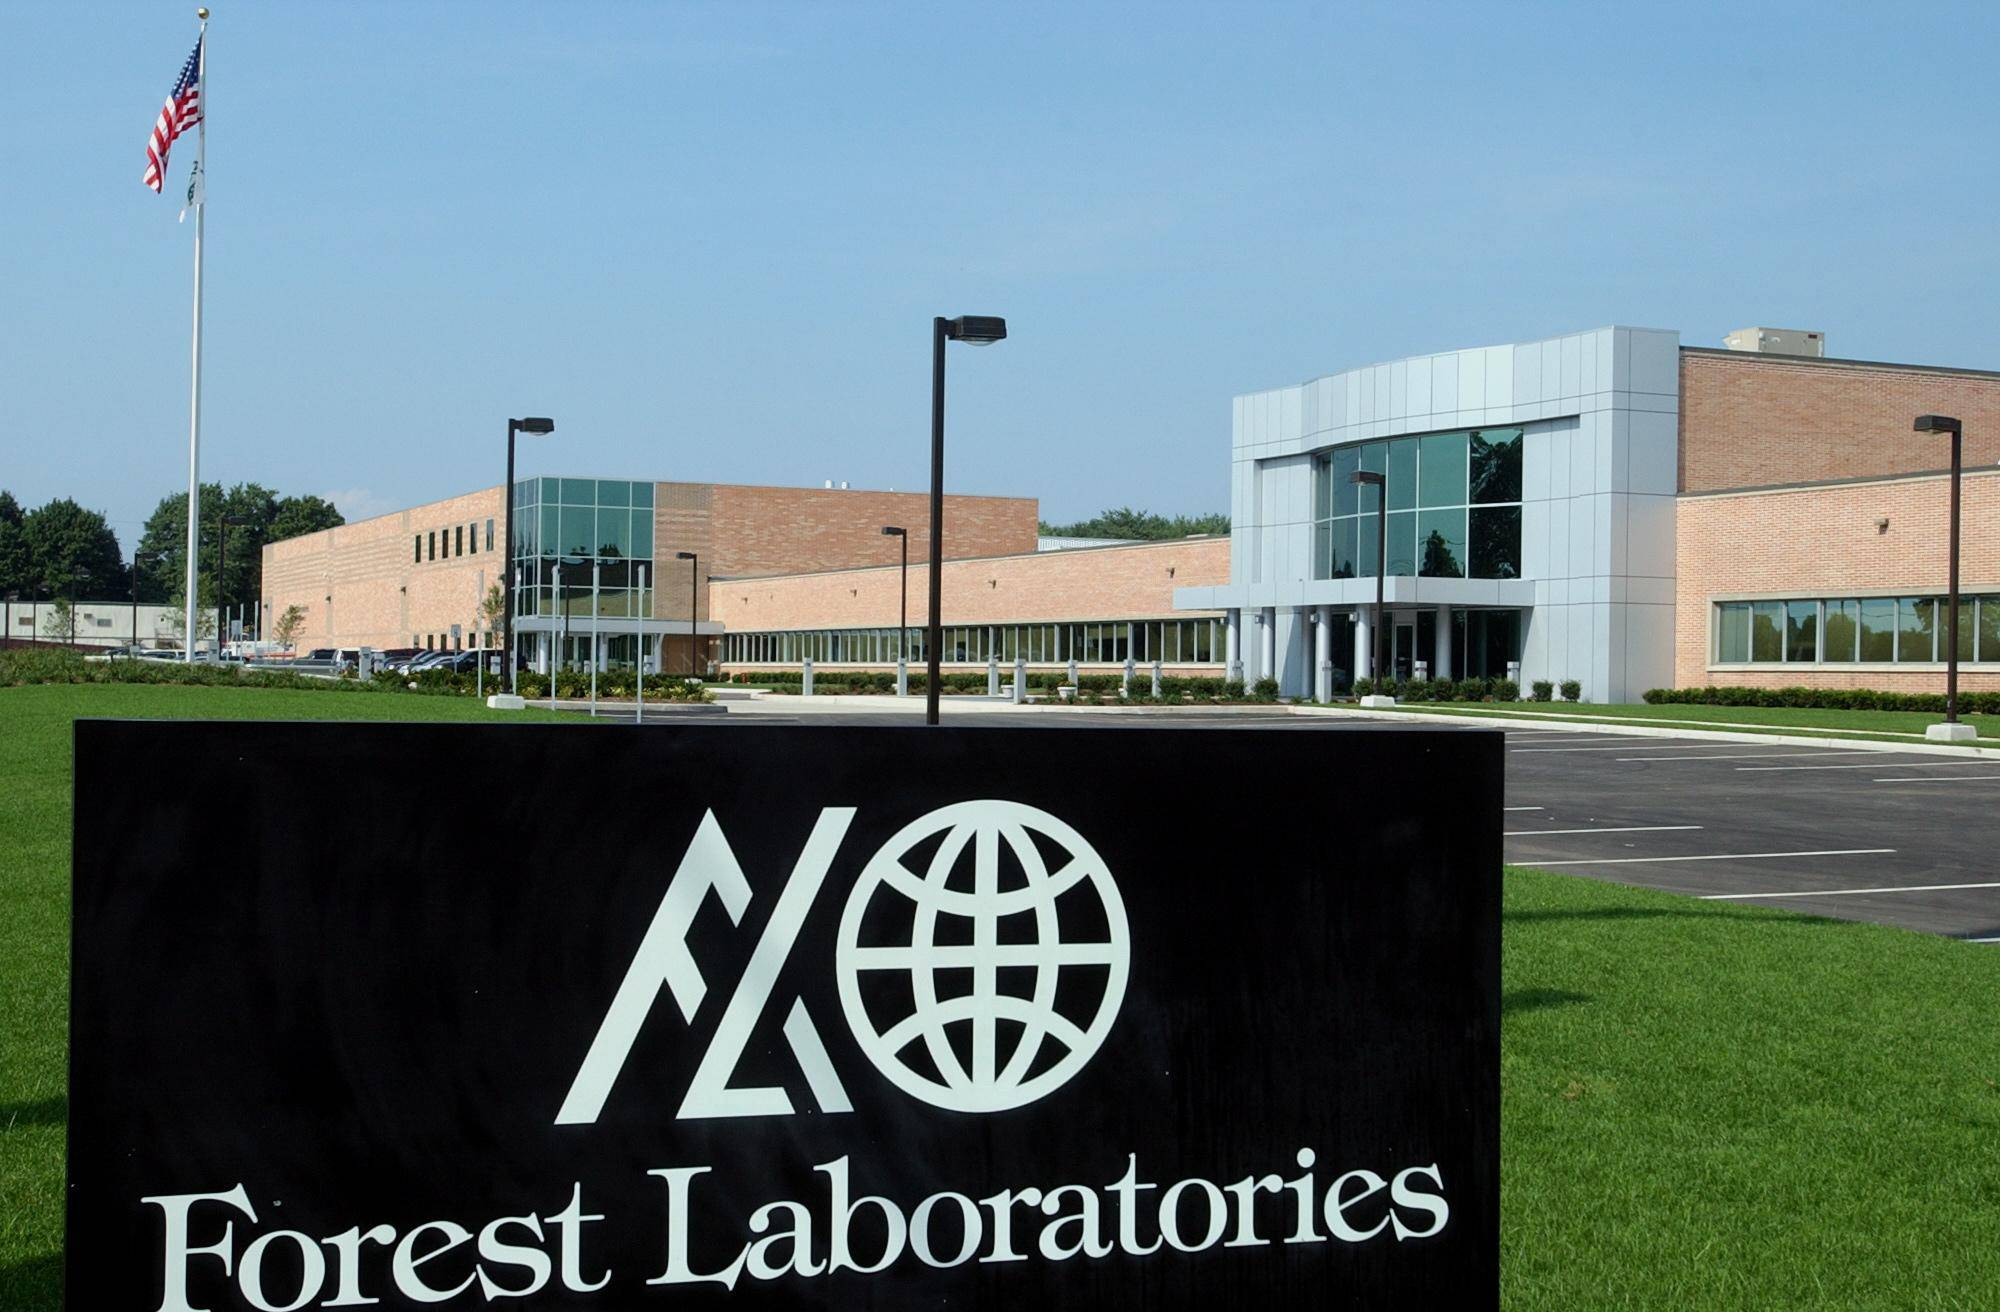 The Commack, N.Y., branch of Forest Laboratories, a Manhattan-based pharmaceutical company.